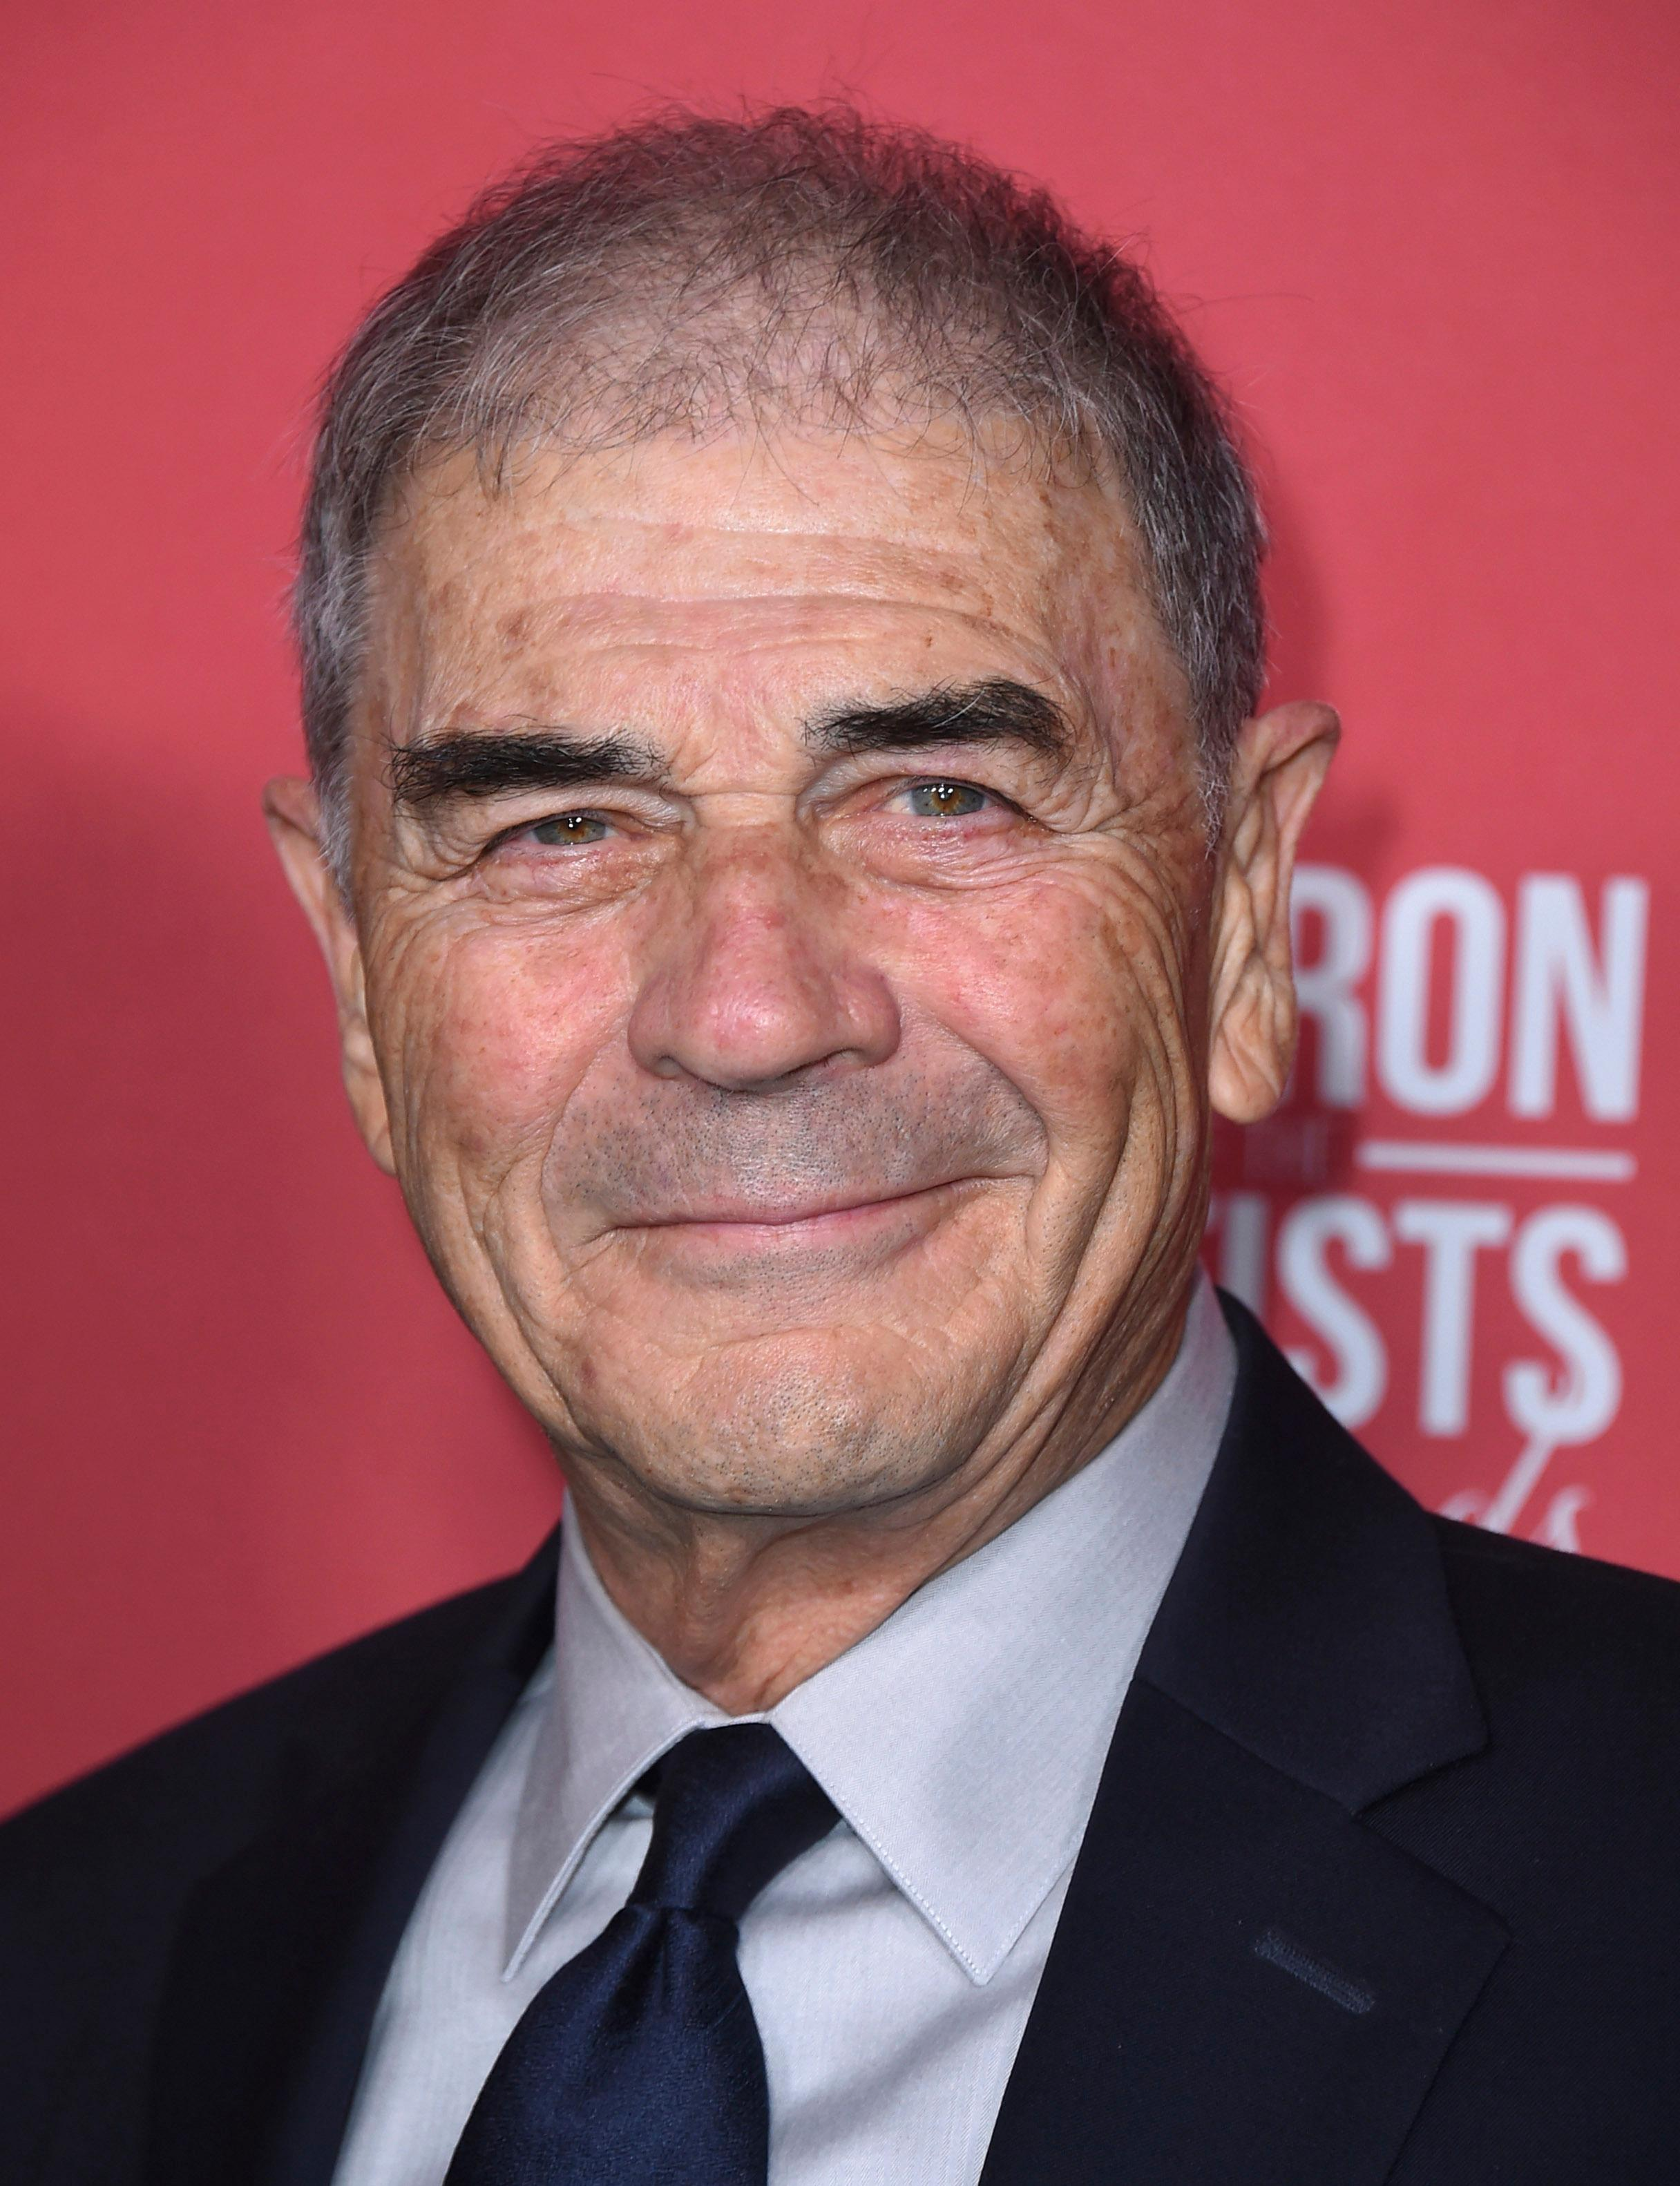 "FILE - In this Nov. 8, 2018, file photo, Robert Forster arrives at the Patron of the Artists Awards at the Wallis Annenberg Center for the Performing Arts in Beverly Hills, Calif. Forster, the handsome character actor who got a career resurgence and Oscar-nomination for playing bail bondsman Max Cherry in ""Jackie Brown,"" has died at age 78. Forster's agent Julia Buchwald says he died Friday, Oct. 11, 2019, at home in Los Angeles of brain cancer. (Photo by Jordan Strauss/Invision/AP, File)"